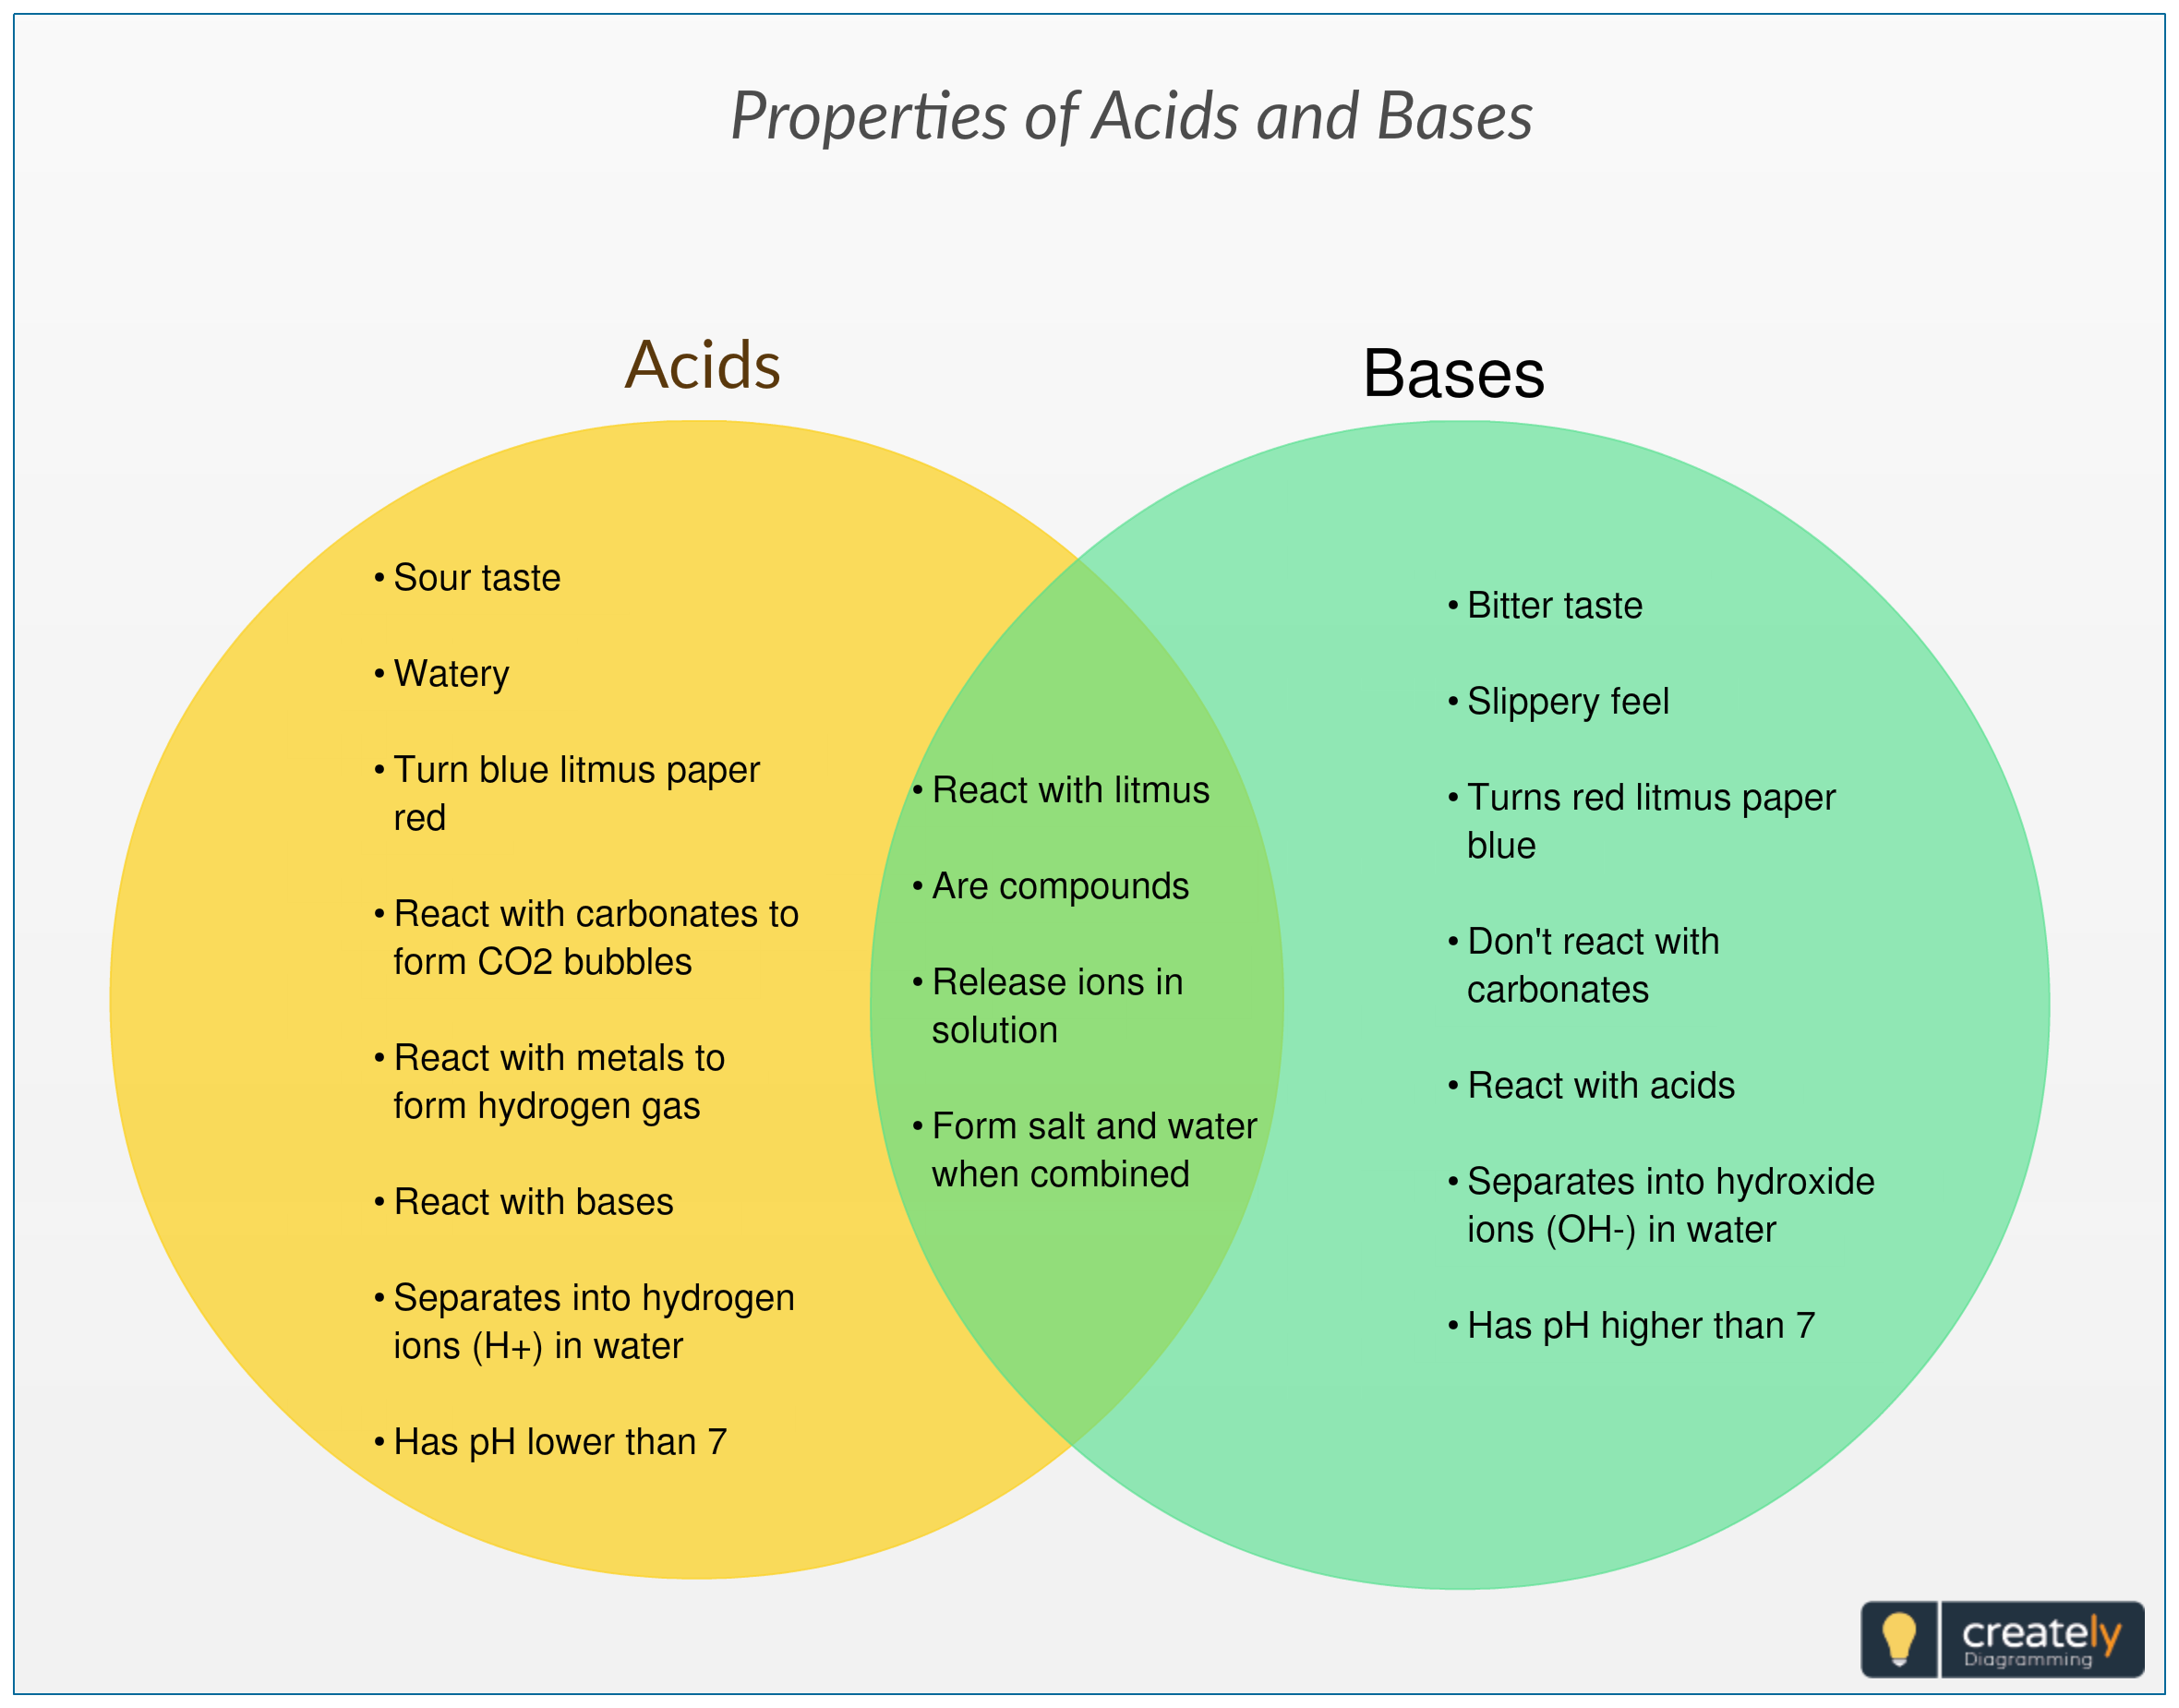 compare and contrast acids and bases venn diagram